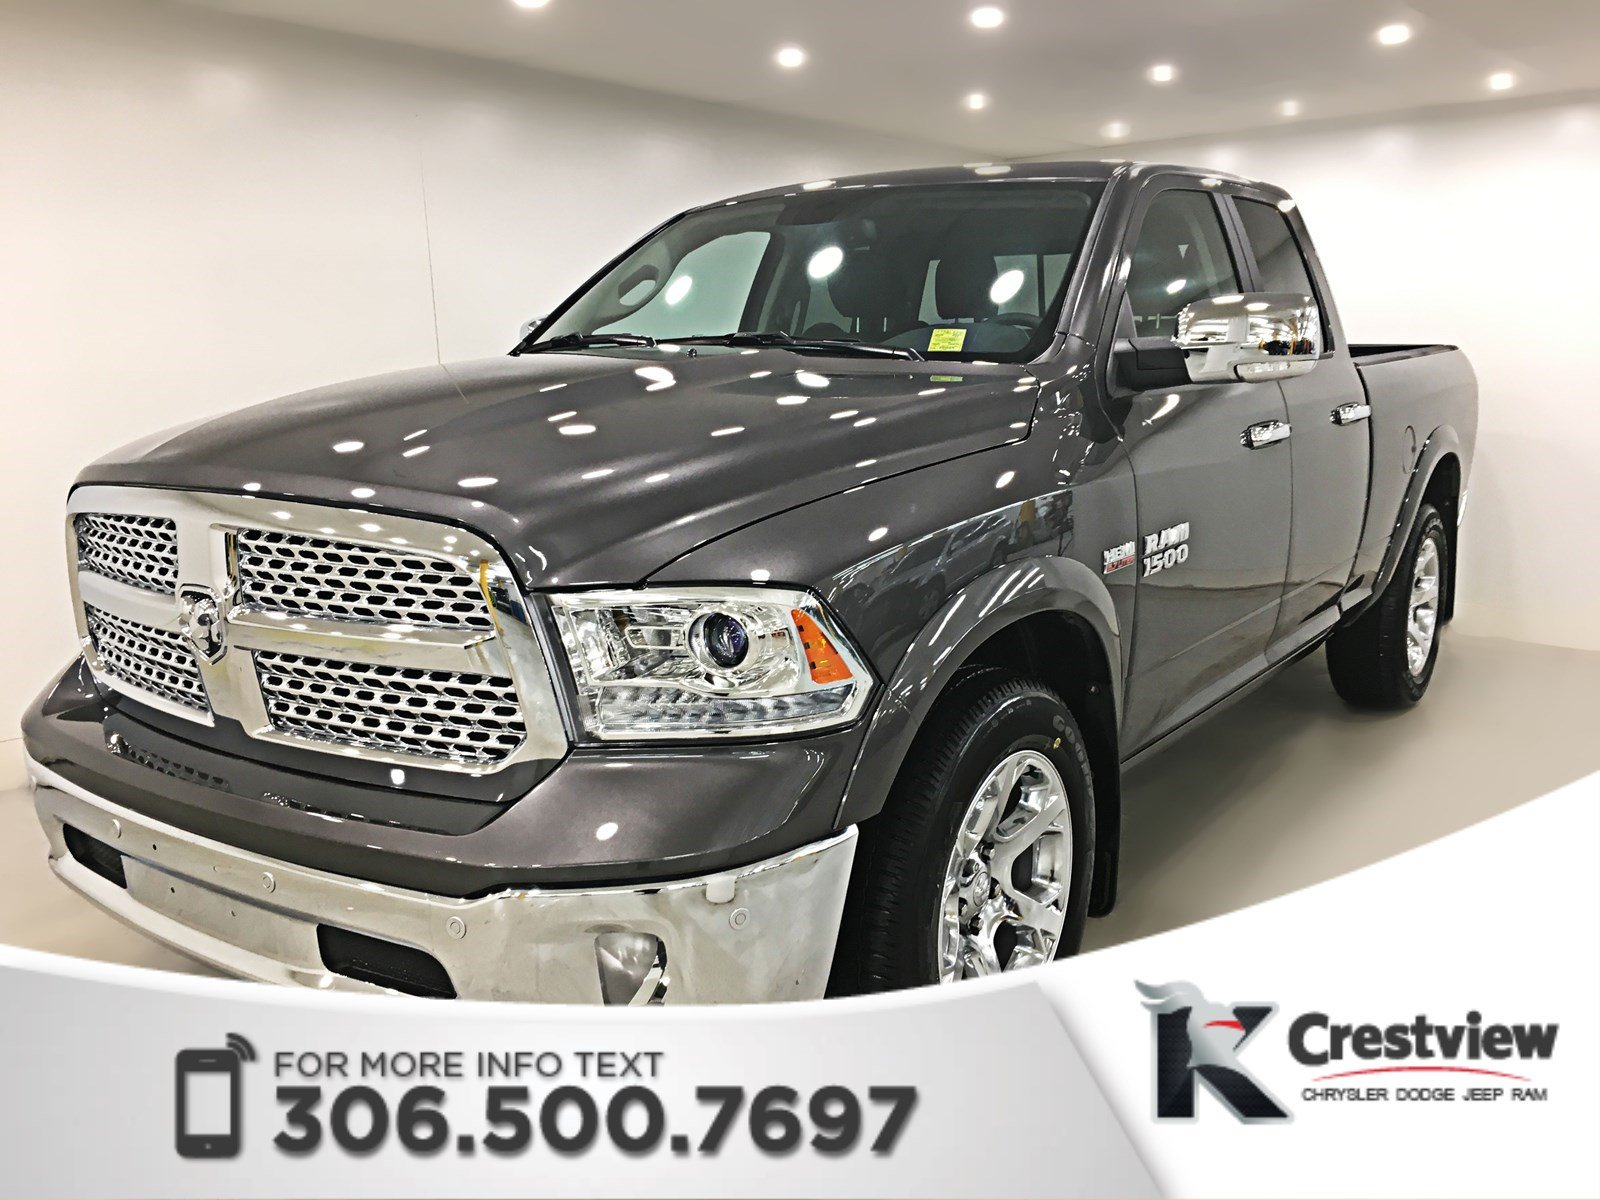 Jeep Certified Pre Owned 2 >> Certified Pre-Owned 2017 Ram 1500 Laramie Quad Cab | Ventilated Seats | Sunroof | Remote Start ...